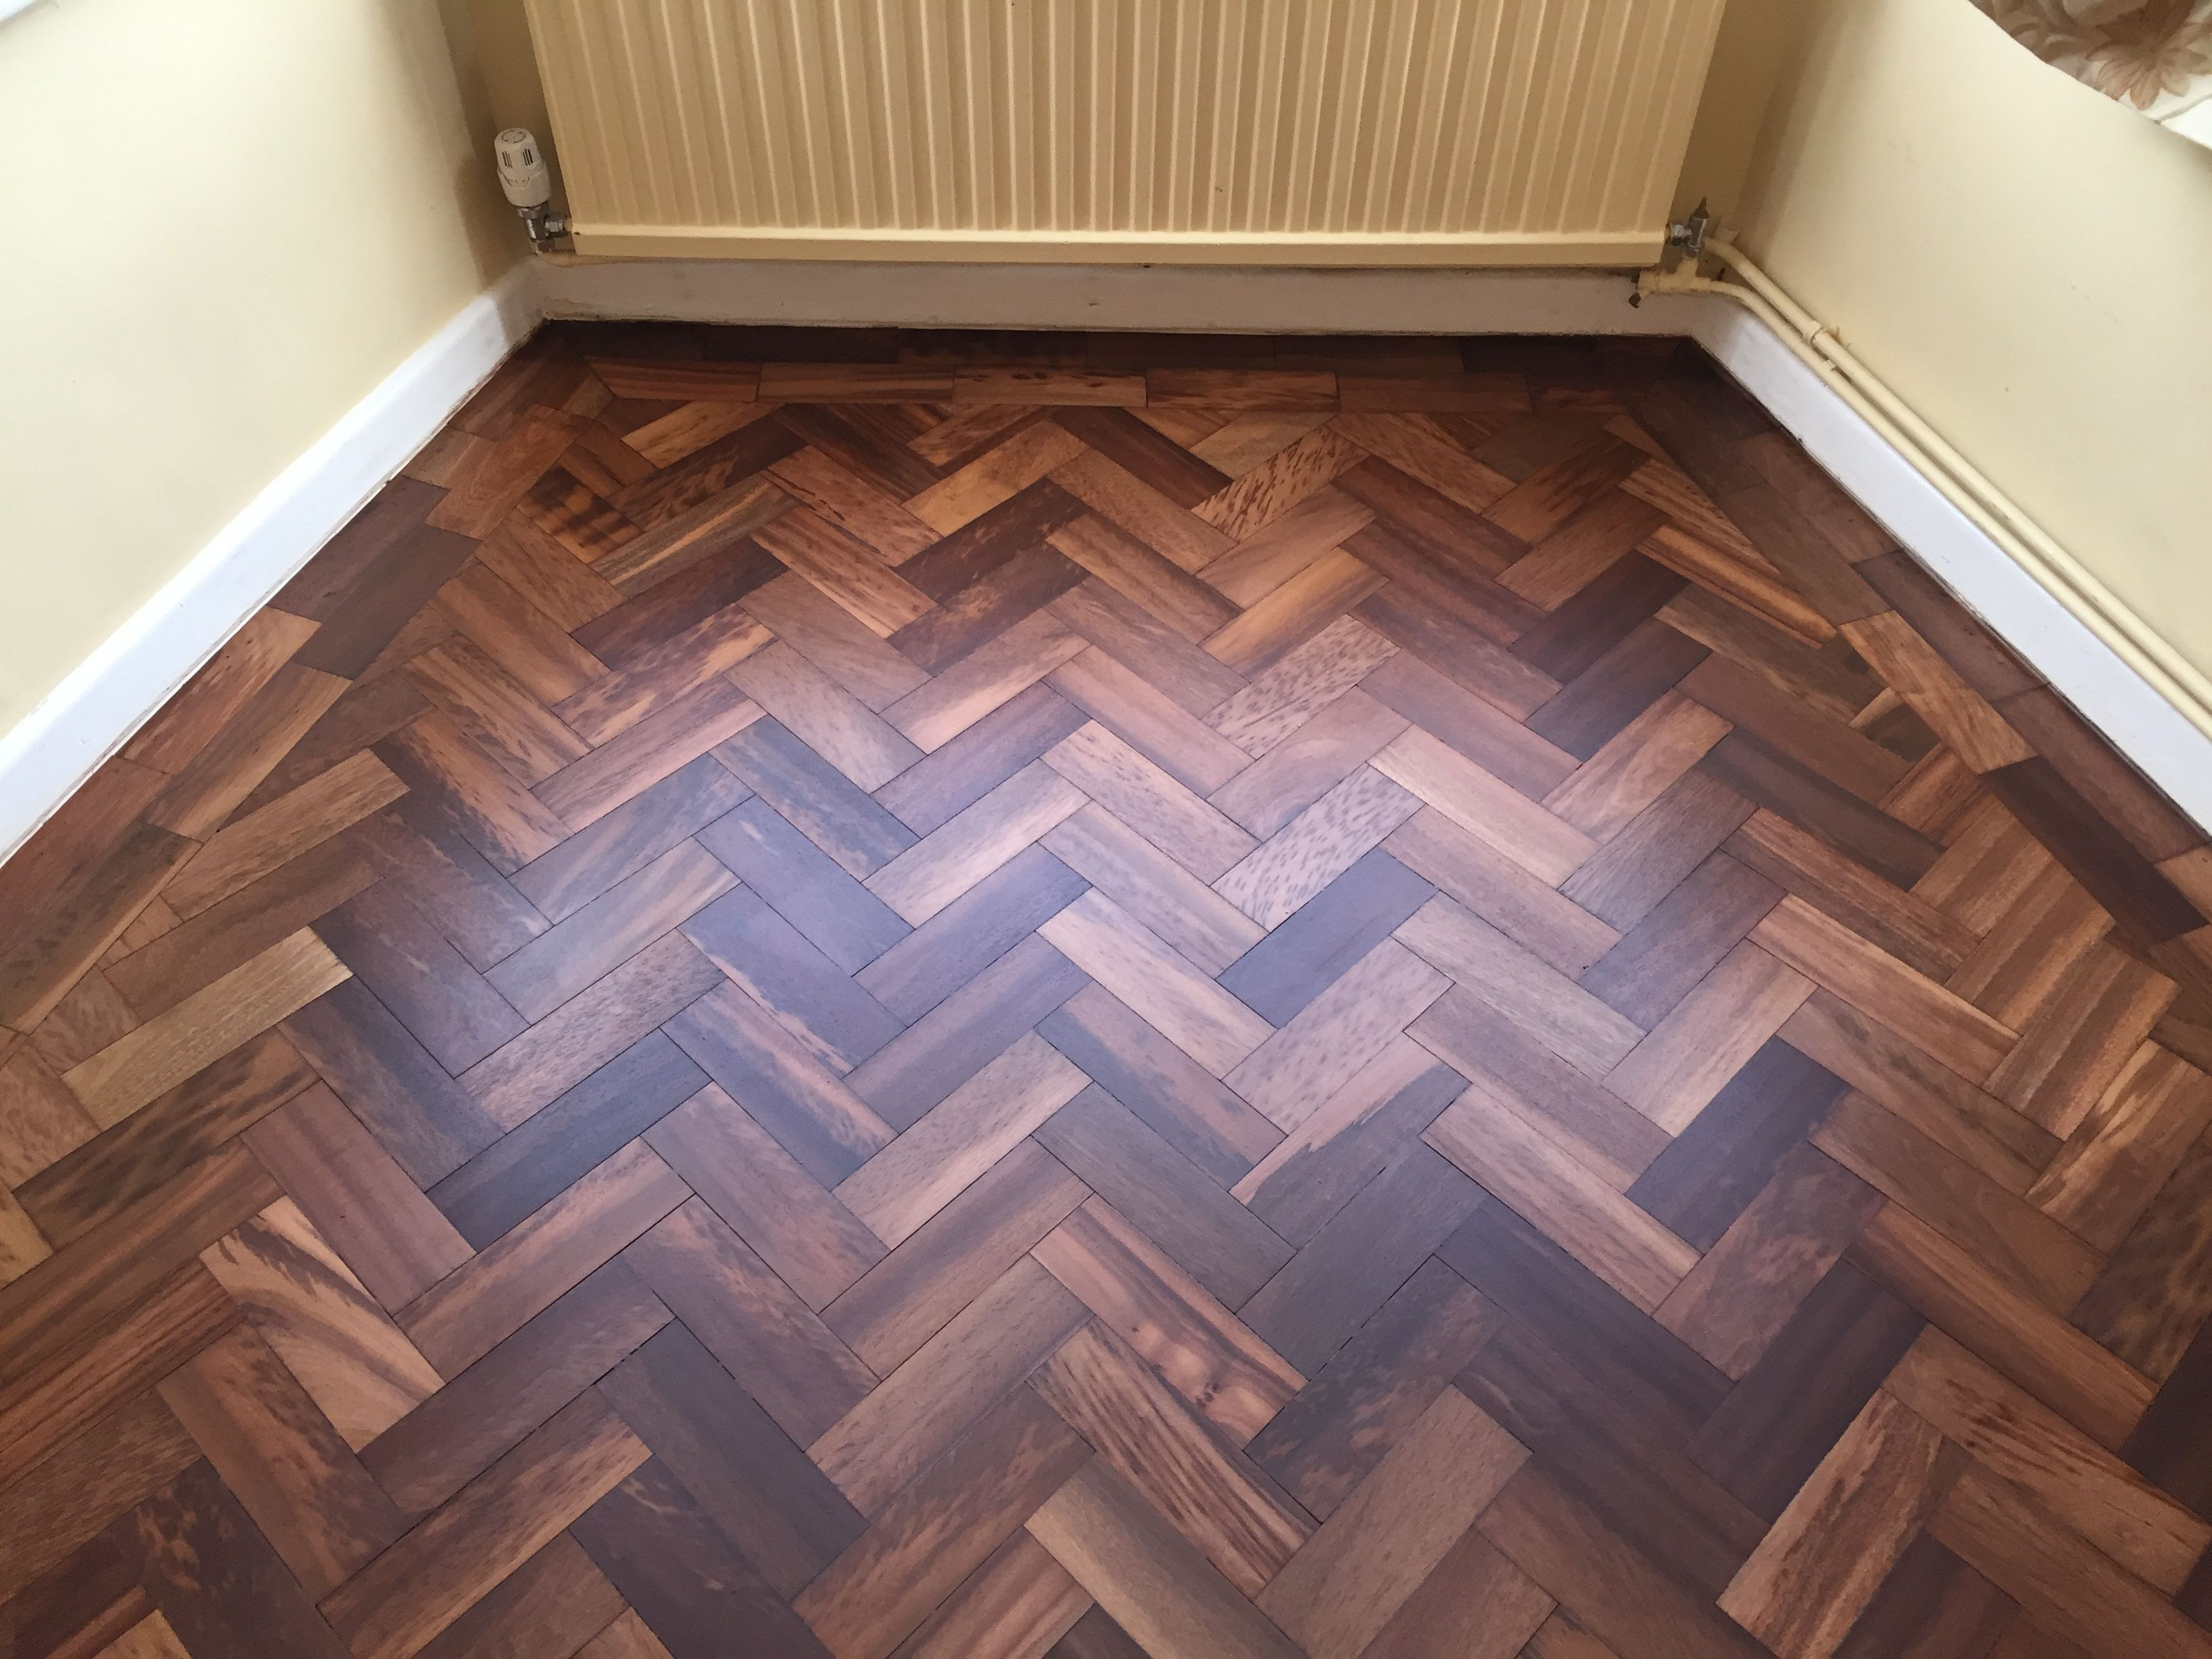 hardwood floor refinishing supplies near me of we love parquet another floor restored to its former beauty for we love parquet another floor restored to its former beauty herringbone